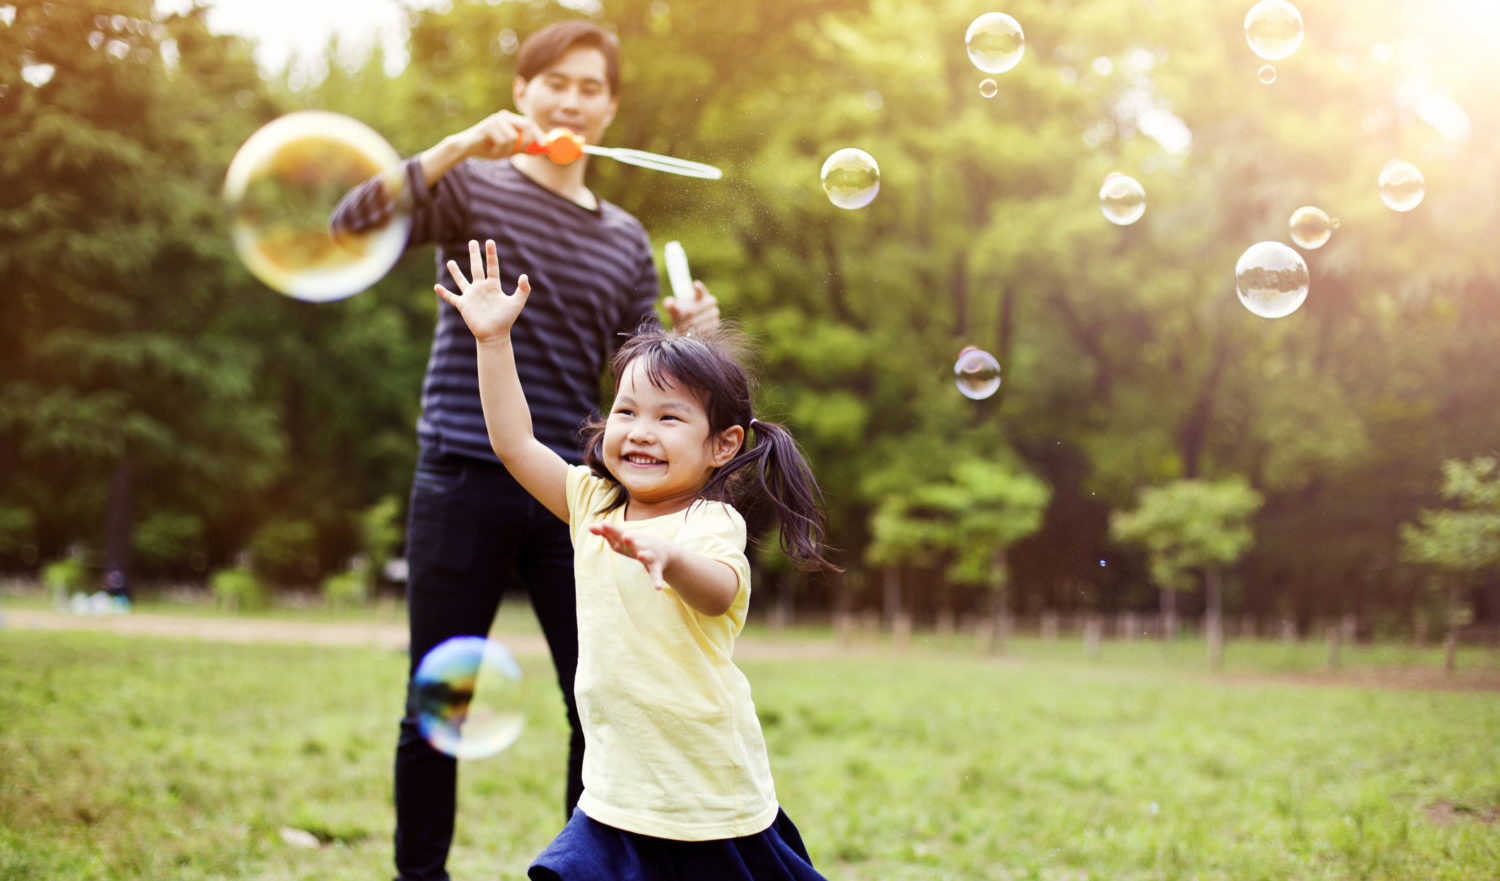 Japanese father and daughter having fun in park with Soap Bubbles in Tokyo, Japan. Image is taken during Tokyo Istockalypse 2015